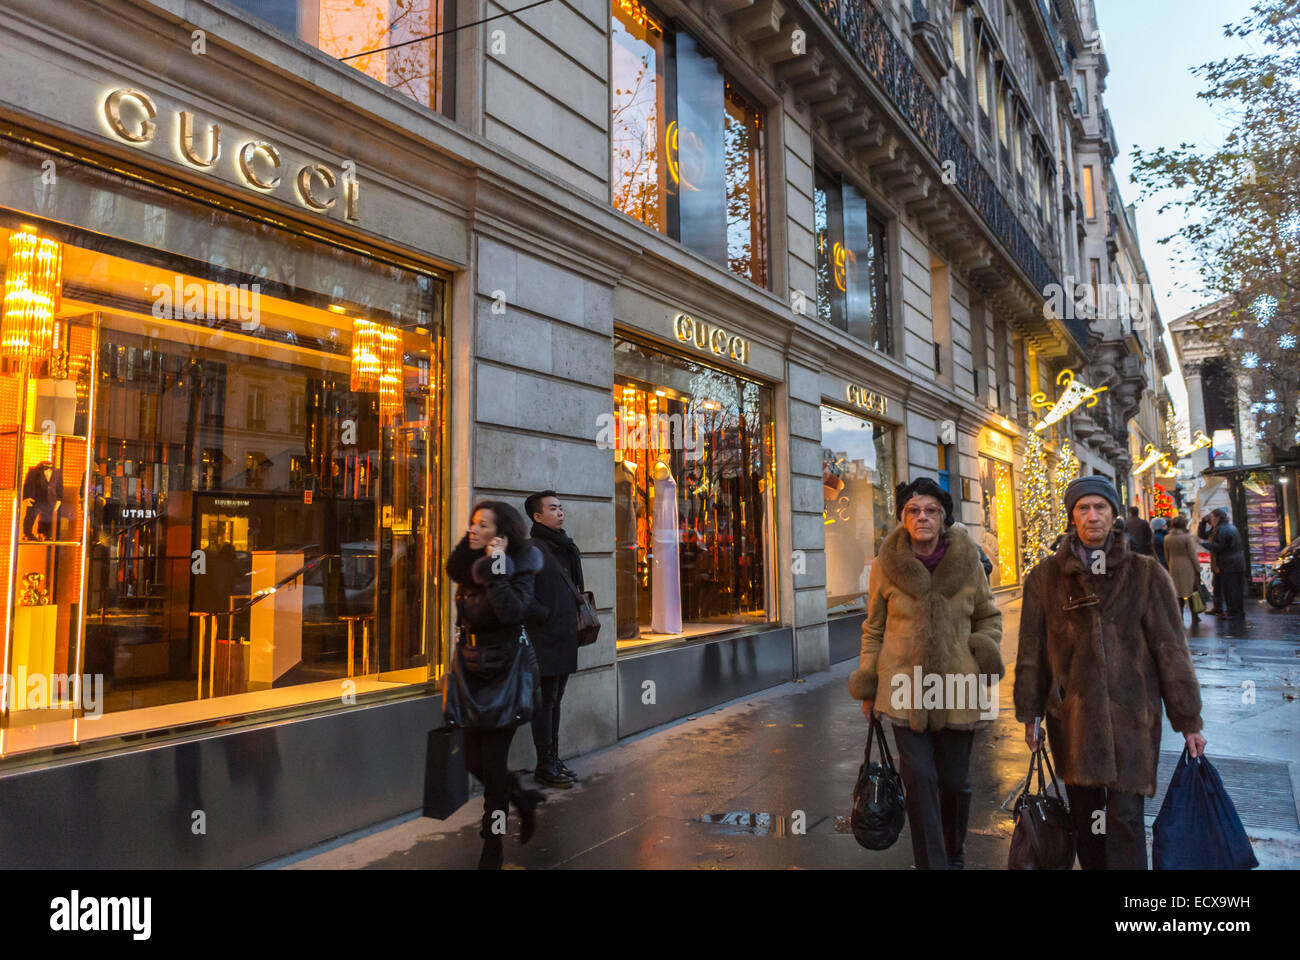 paris street people outside night luxury window shopping shops stock photo 76795869 alamy. Black Bedroom Furniture Sets. Home Design Ideas